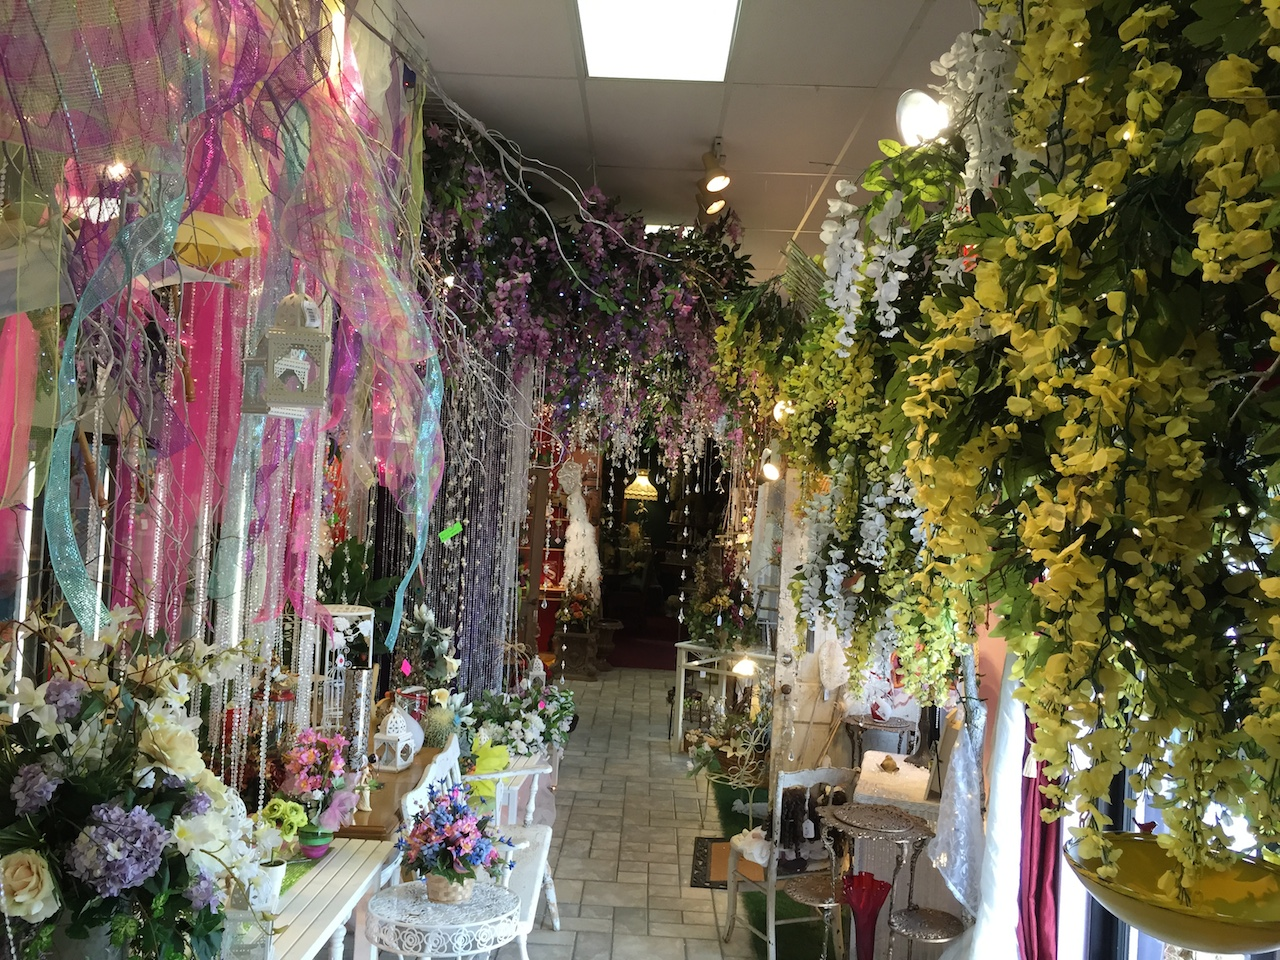 Flower shops spring hill florida gallery flower decoration ideas sherwood florist more than just a flower shop badzoot wow mightylinksfo mightylinksfo